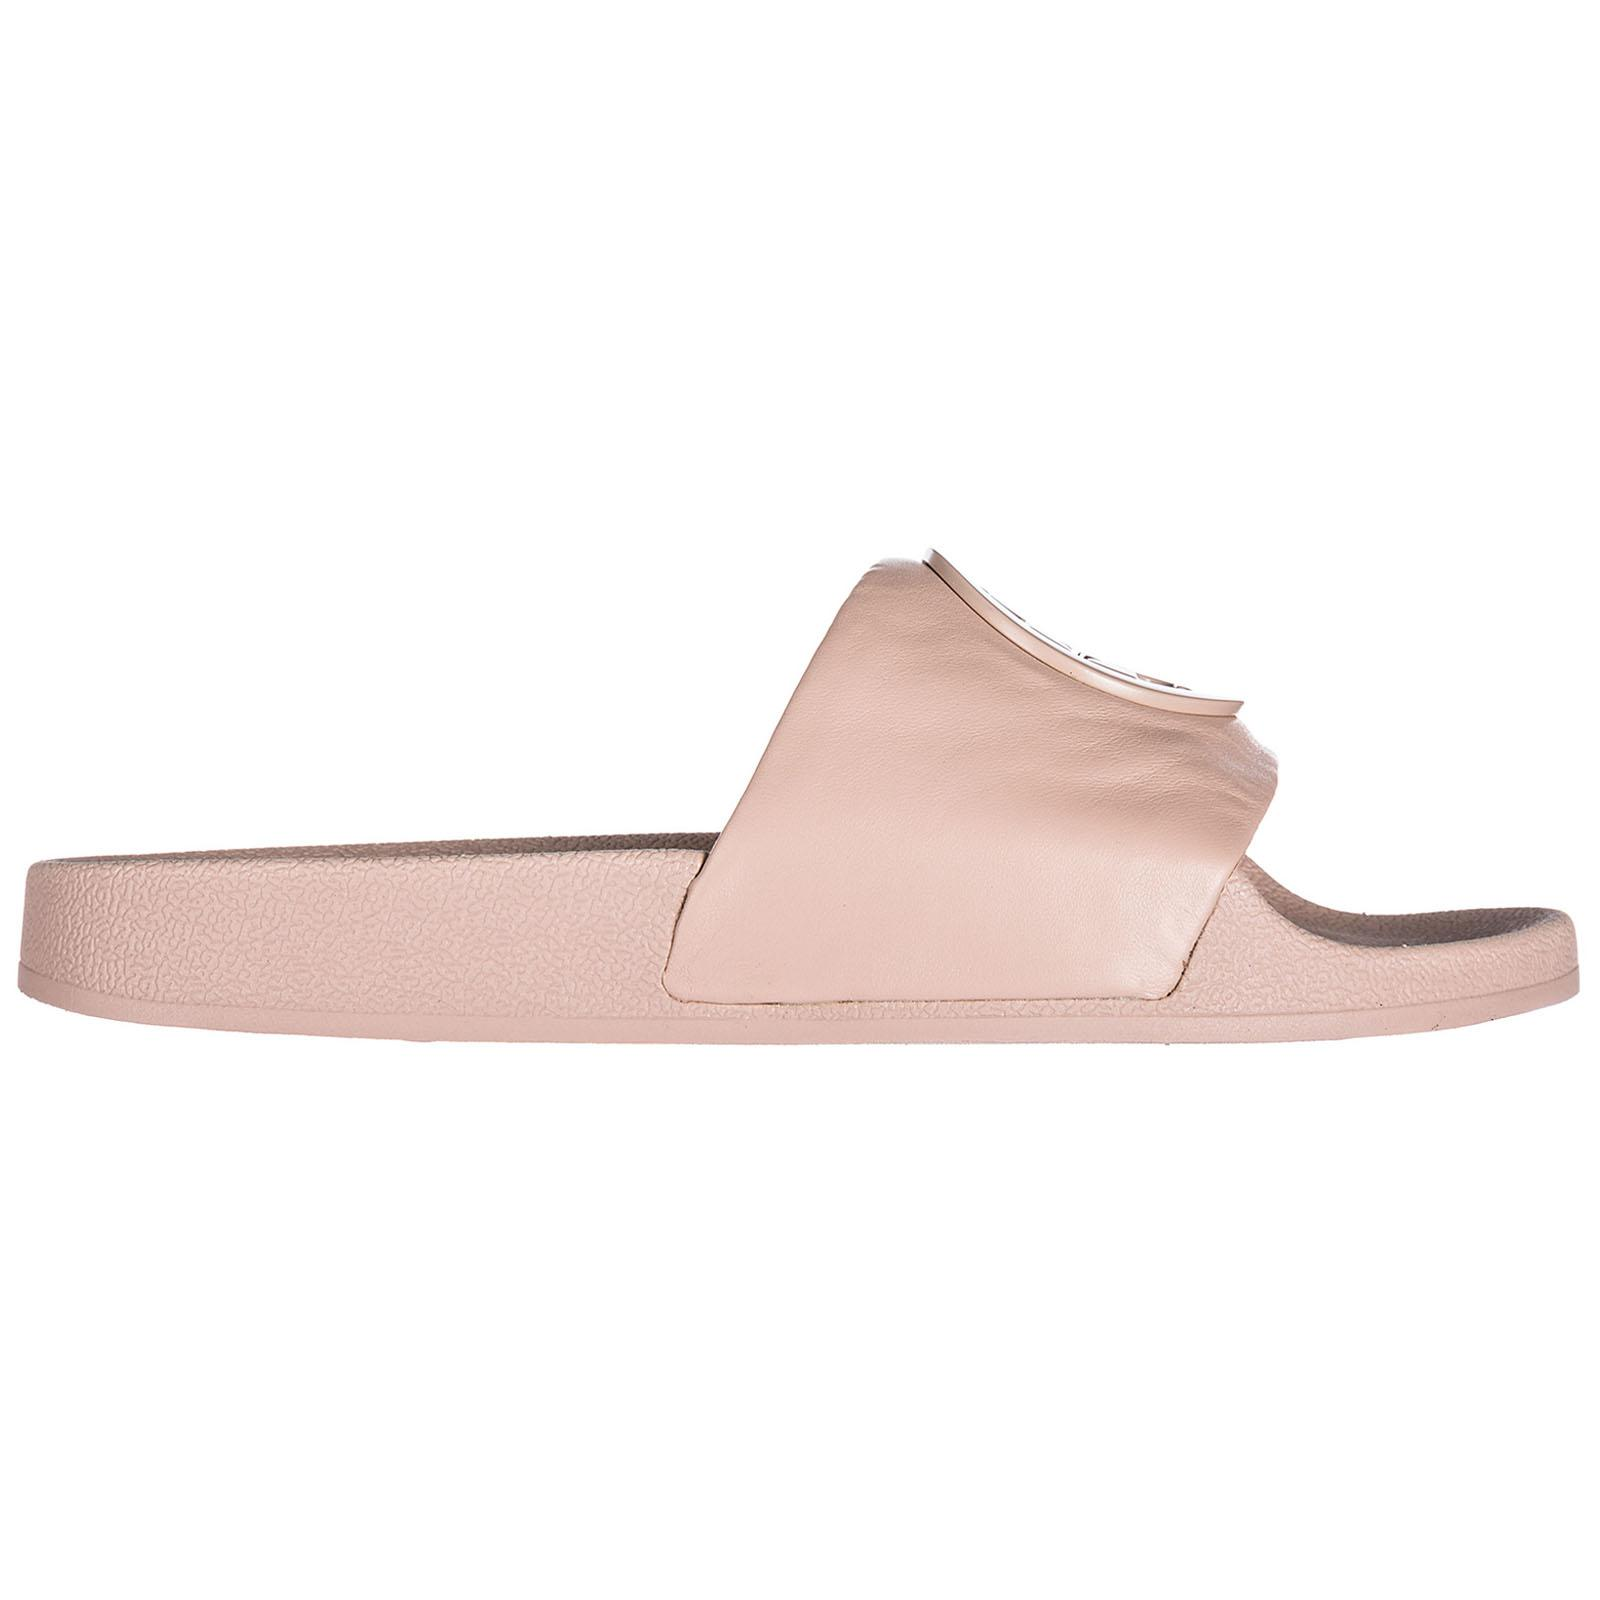 ecf386a05 Tory Burch 10mm Lina Leather Logo Slide Sandals in Pink - Save 54 ...